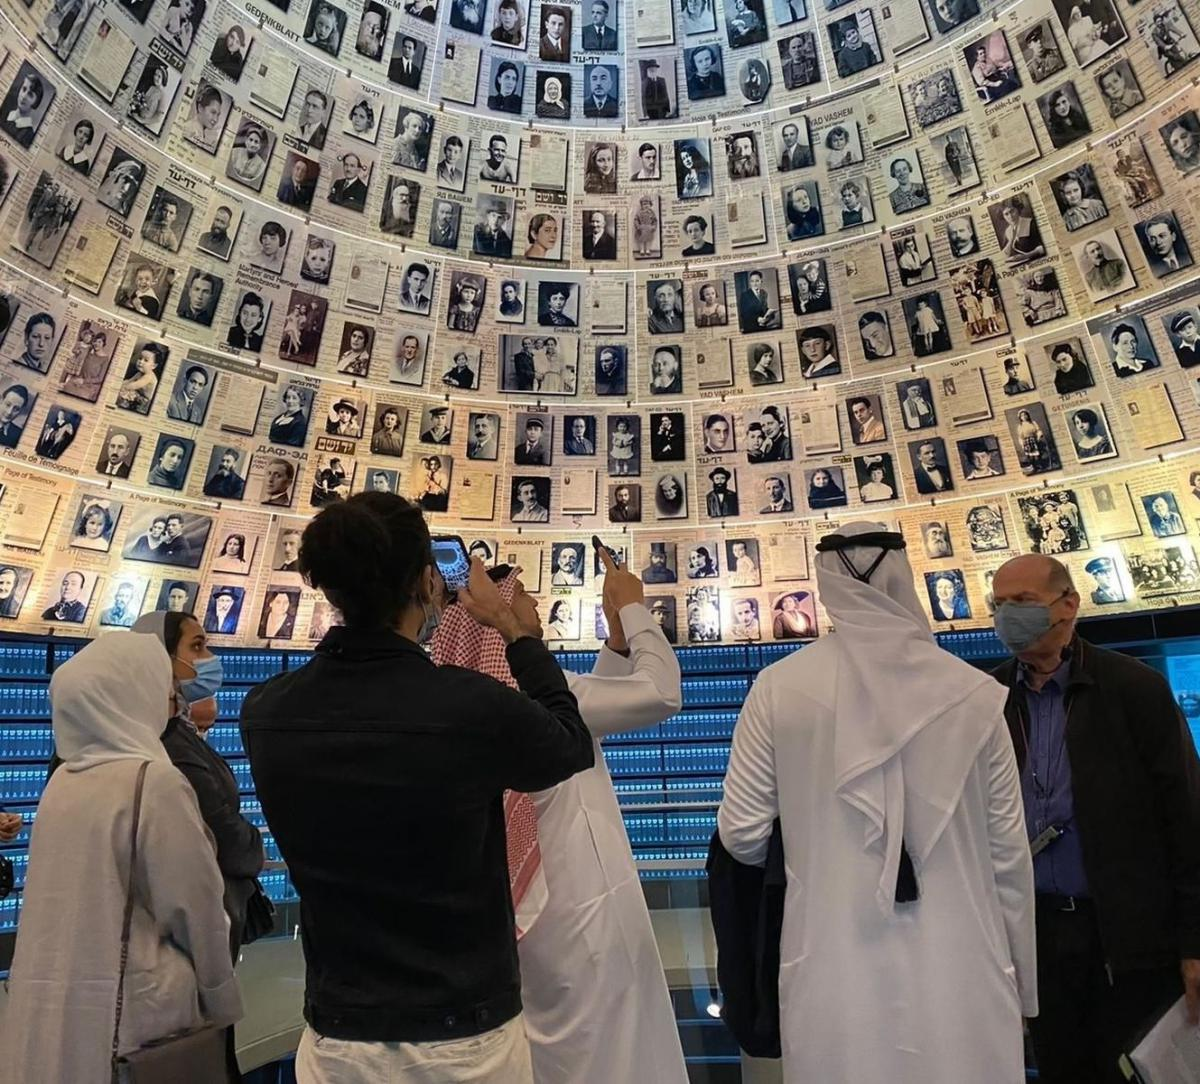 Members of the UAE/Bahraini delegation in the Hall of Names at Yad Vashem